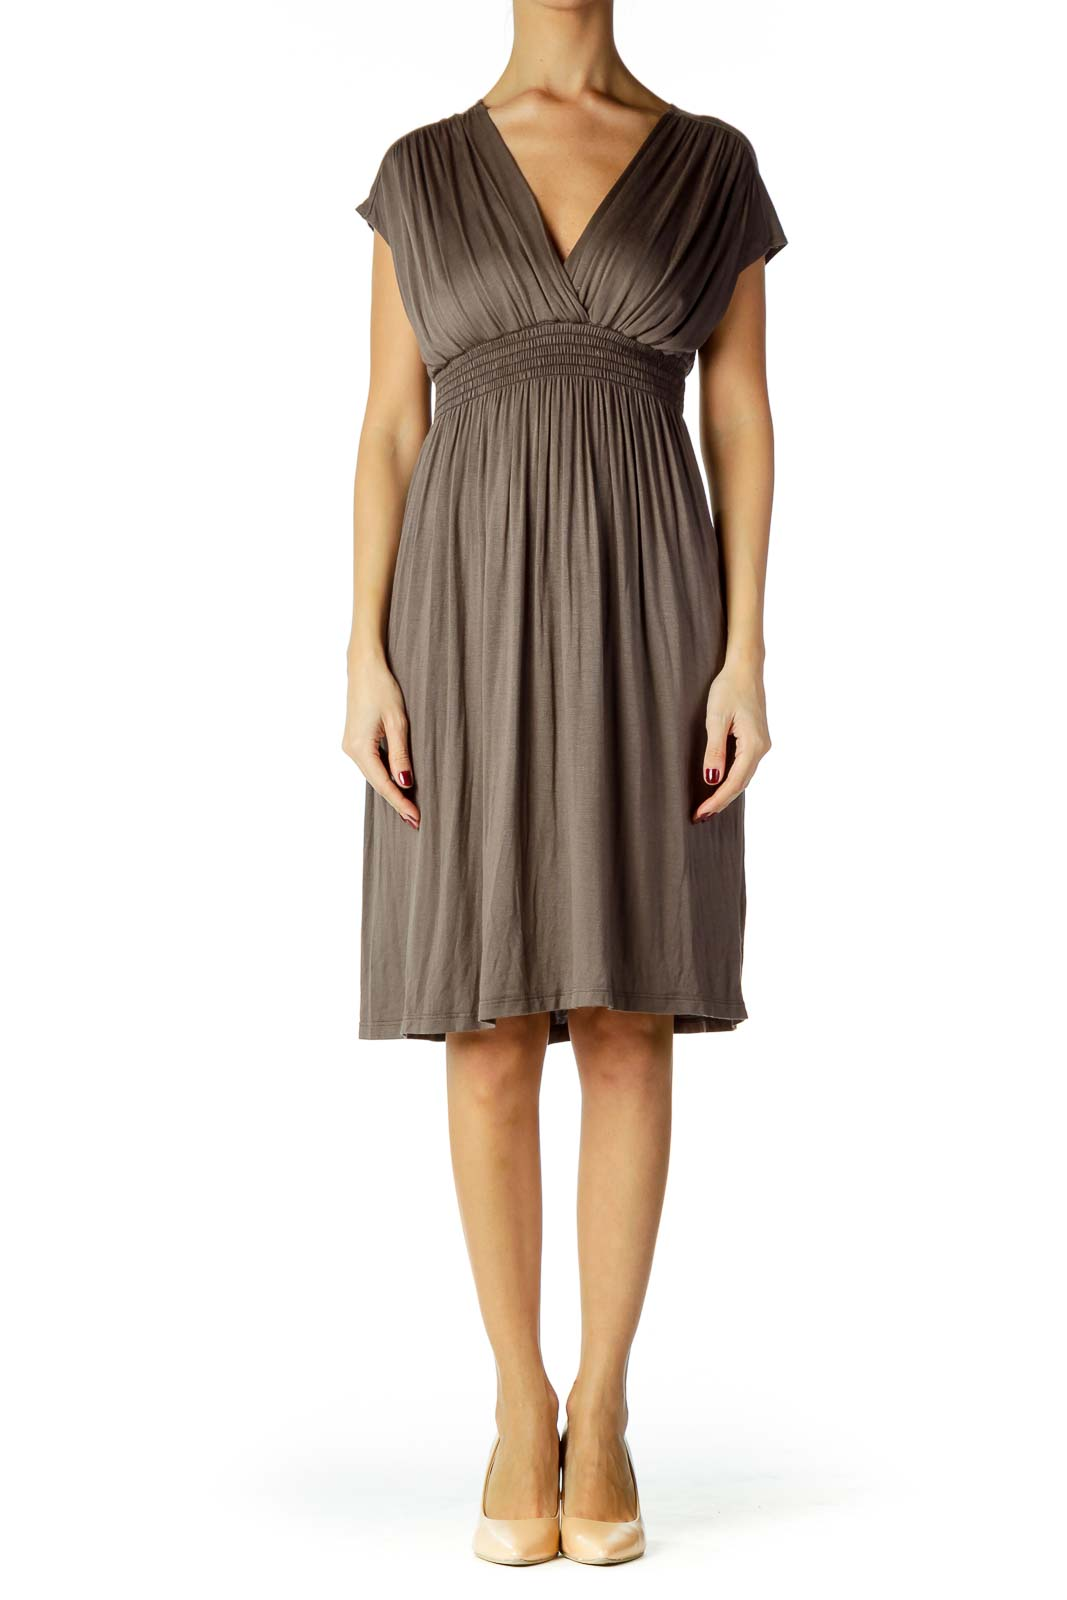 Taupe Scrunched Dress